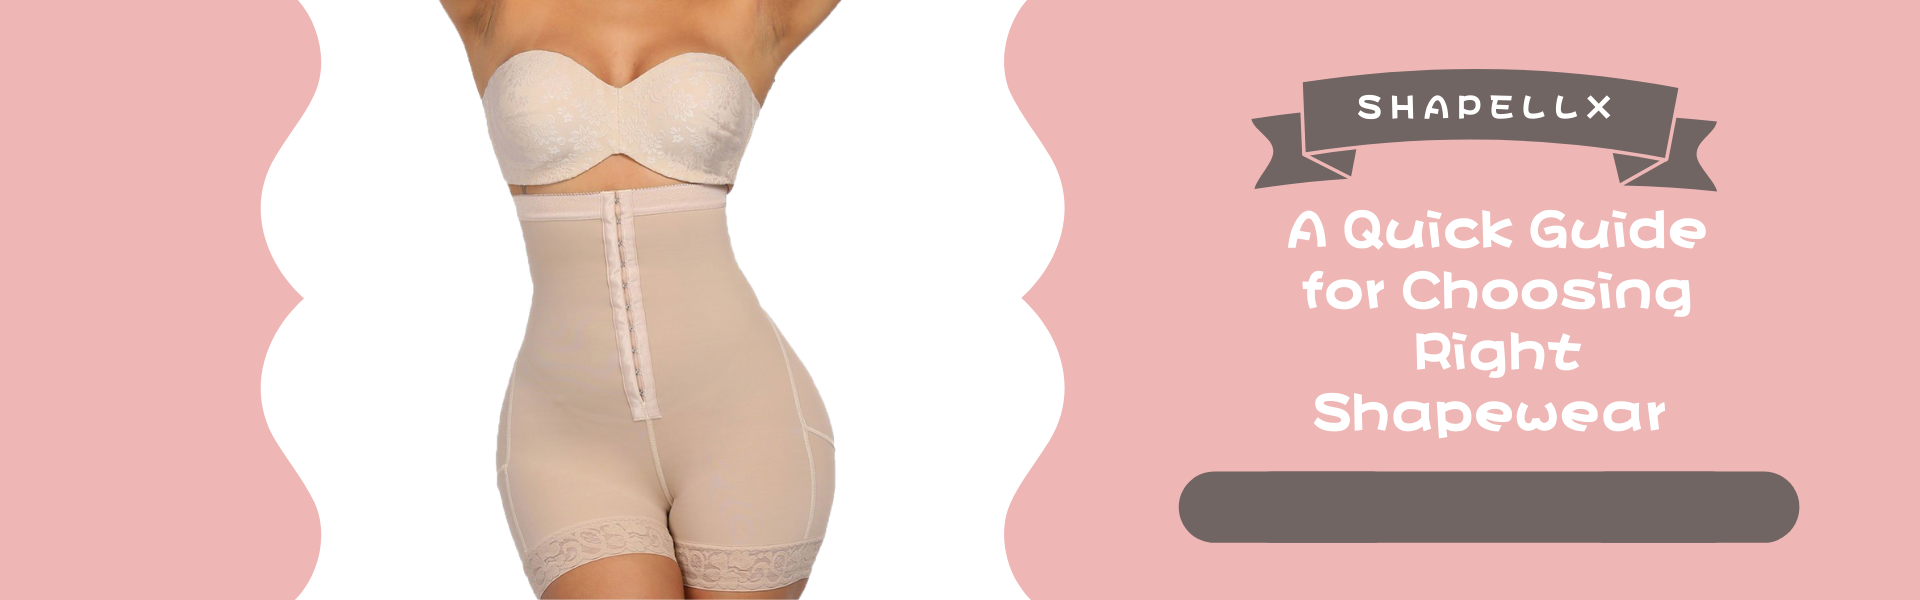 A Quick Guide for Choosing Right Shapewear